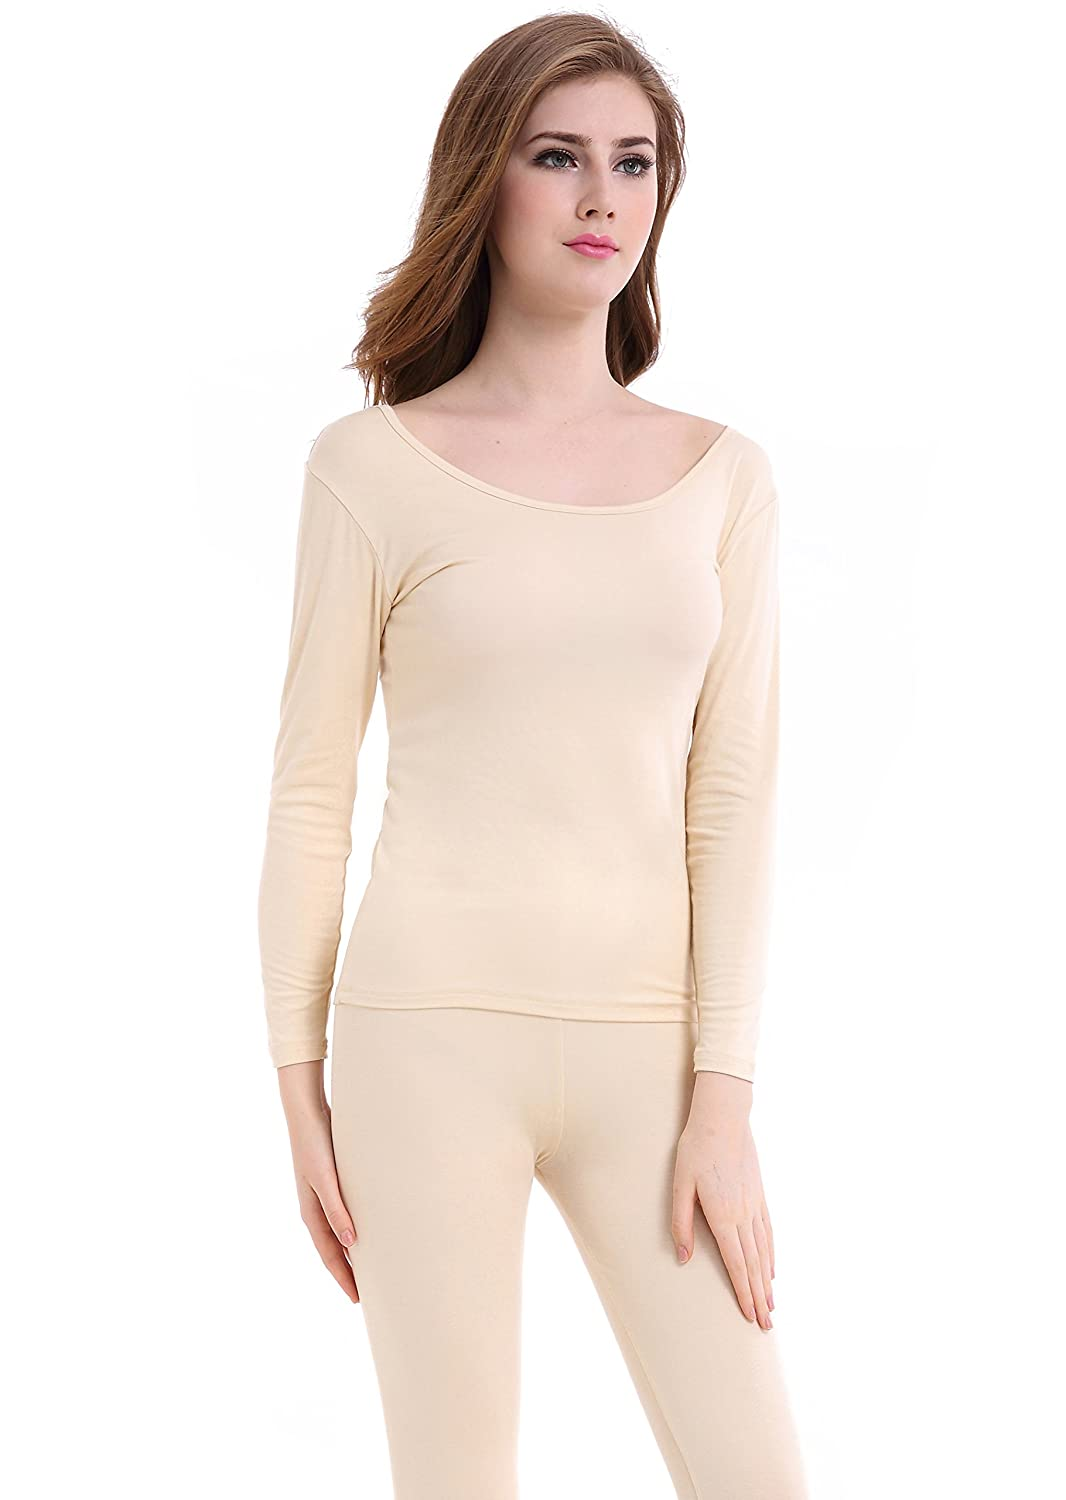 Thermal underwear women Long Base Layer Winter -Ultra Thin Set Bottom Pajama P1-2861-AXL